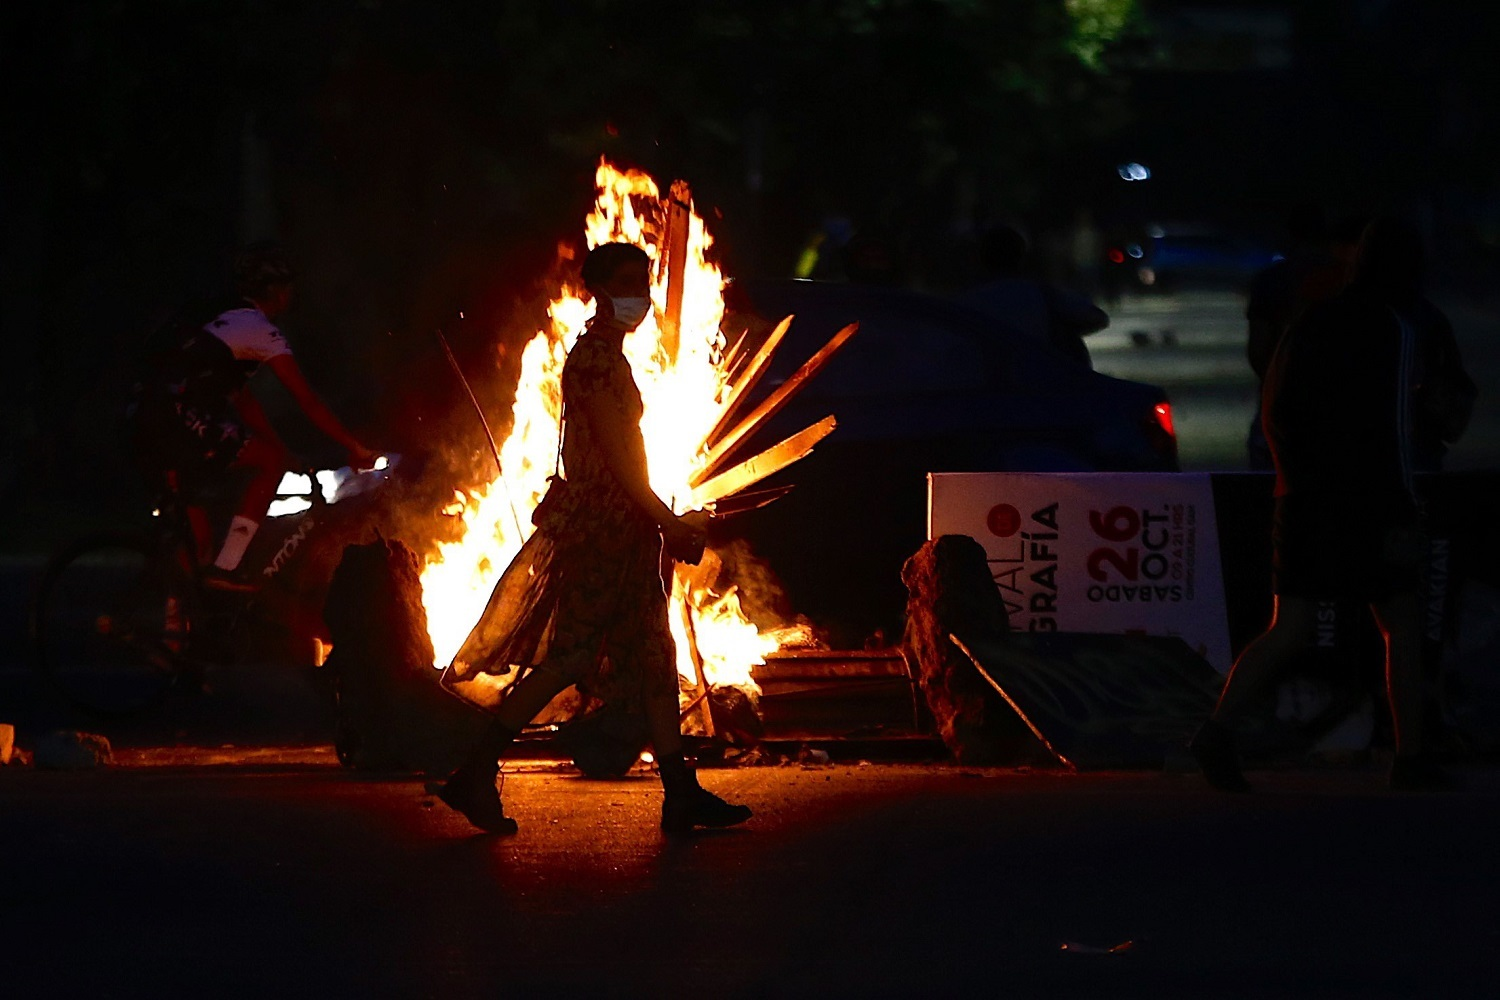 Protests in Santiago, Chile